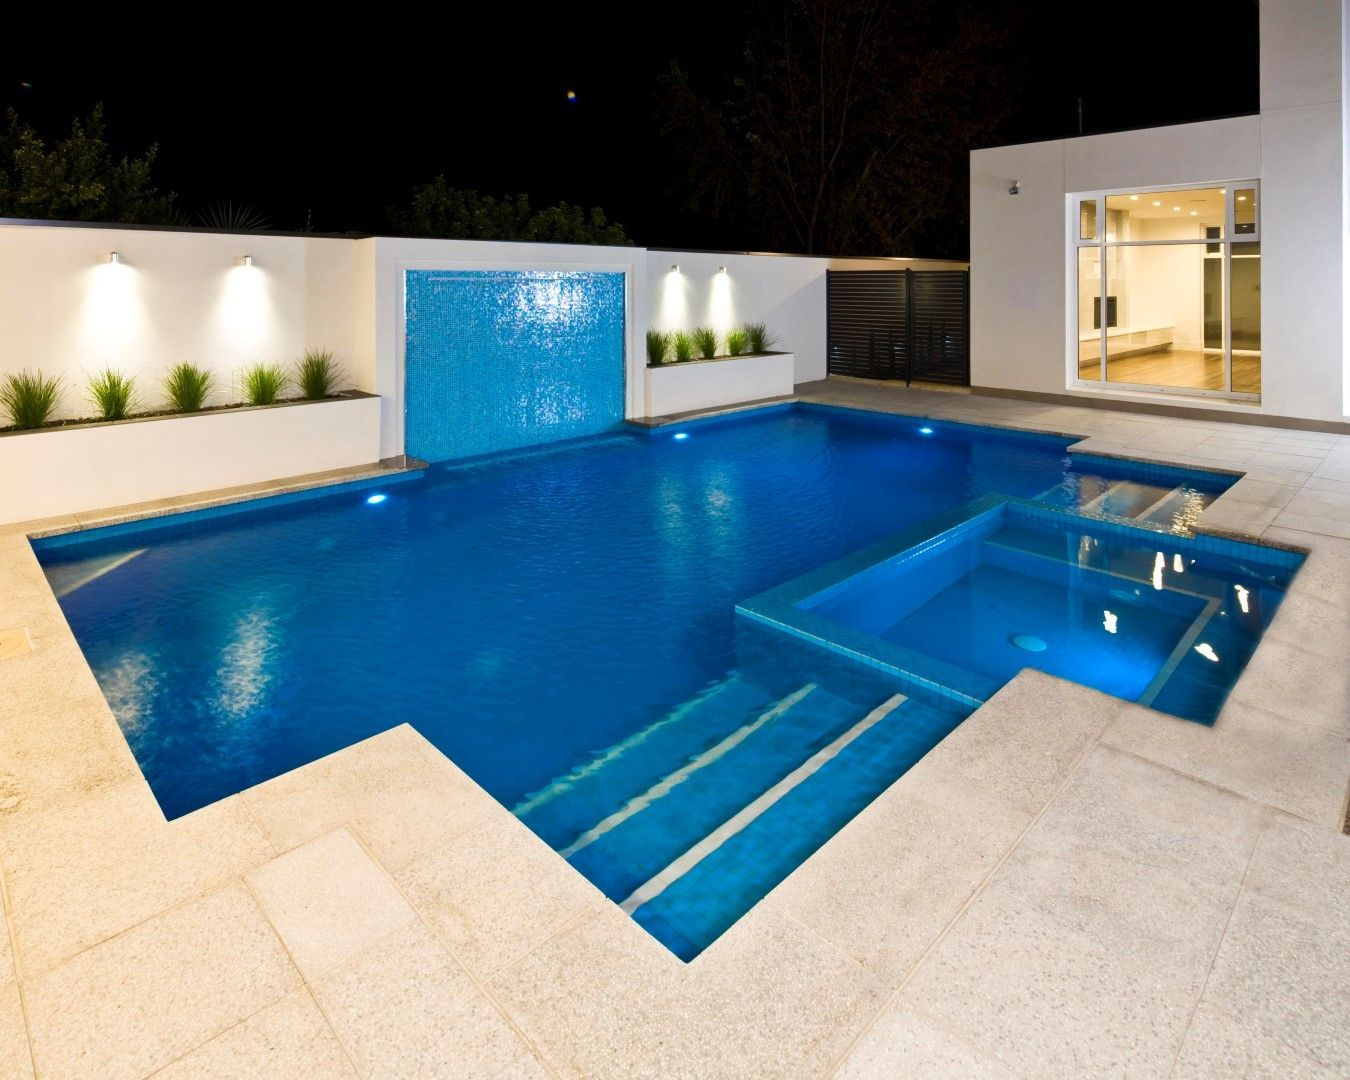 Photo Gallery - Best Swimming Pools - Freedom Pools ... destiné Piscine Freedom